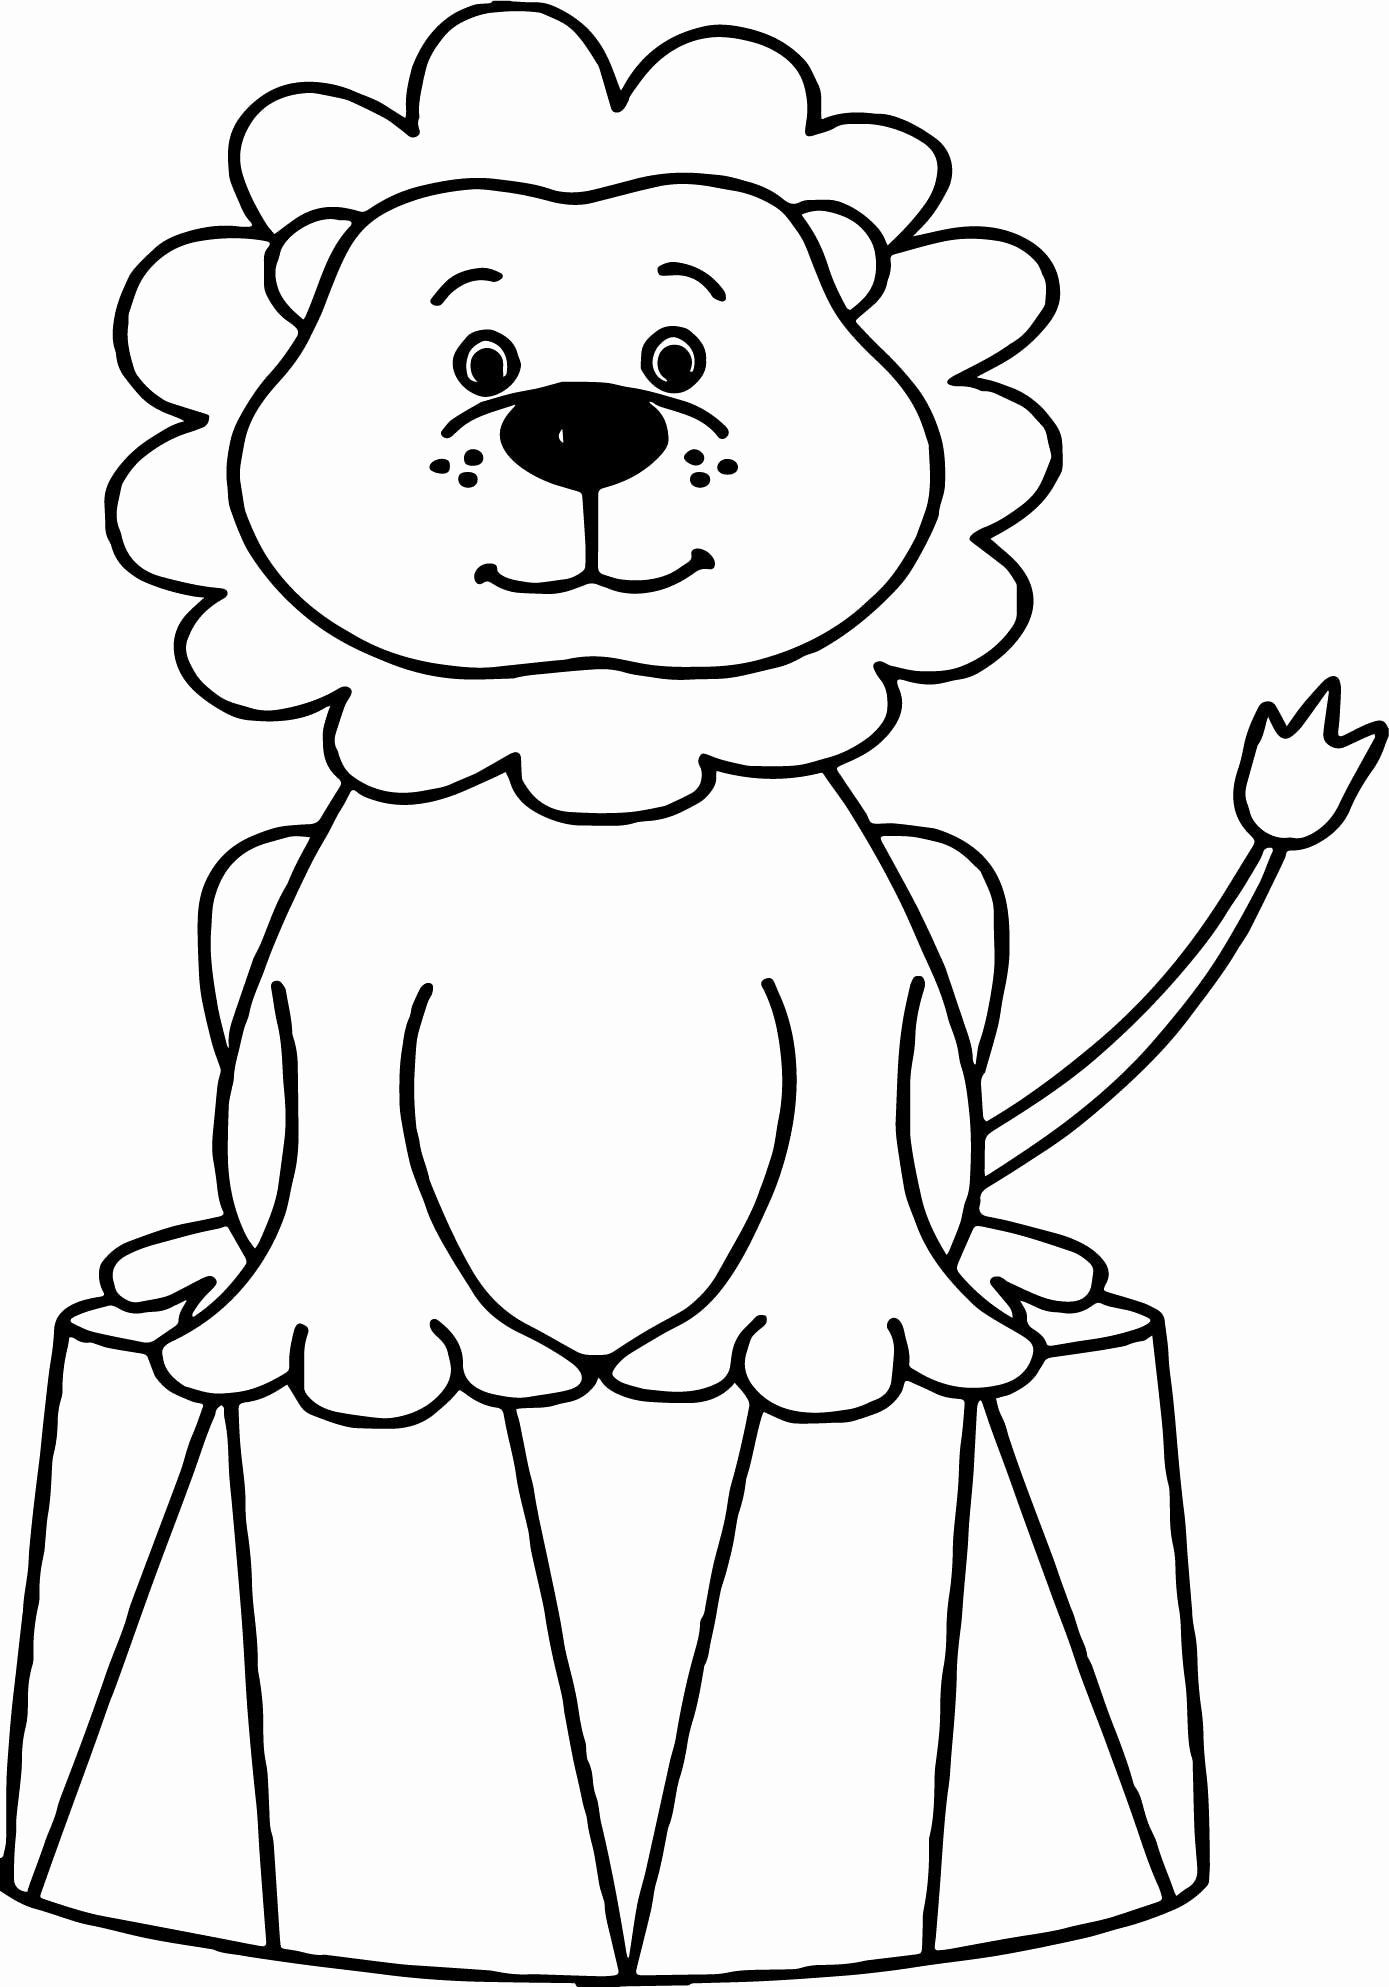 Circus Coloring Pages Printable In 2020 Dieren Kleurplaten